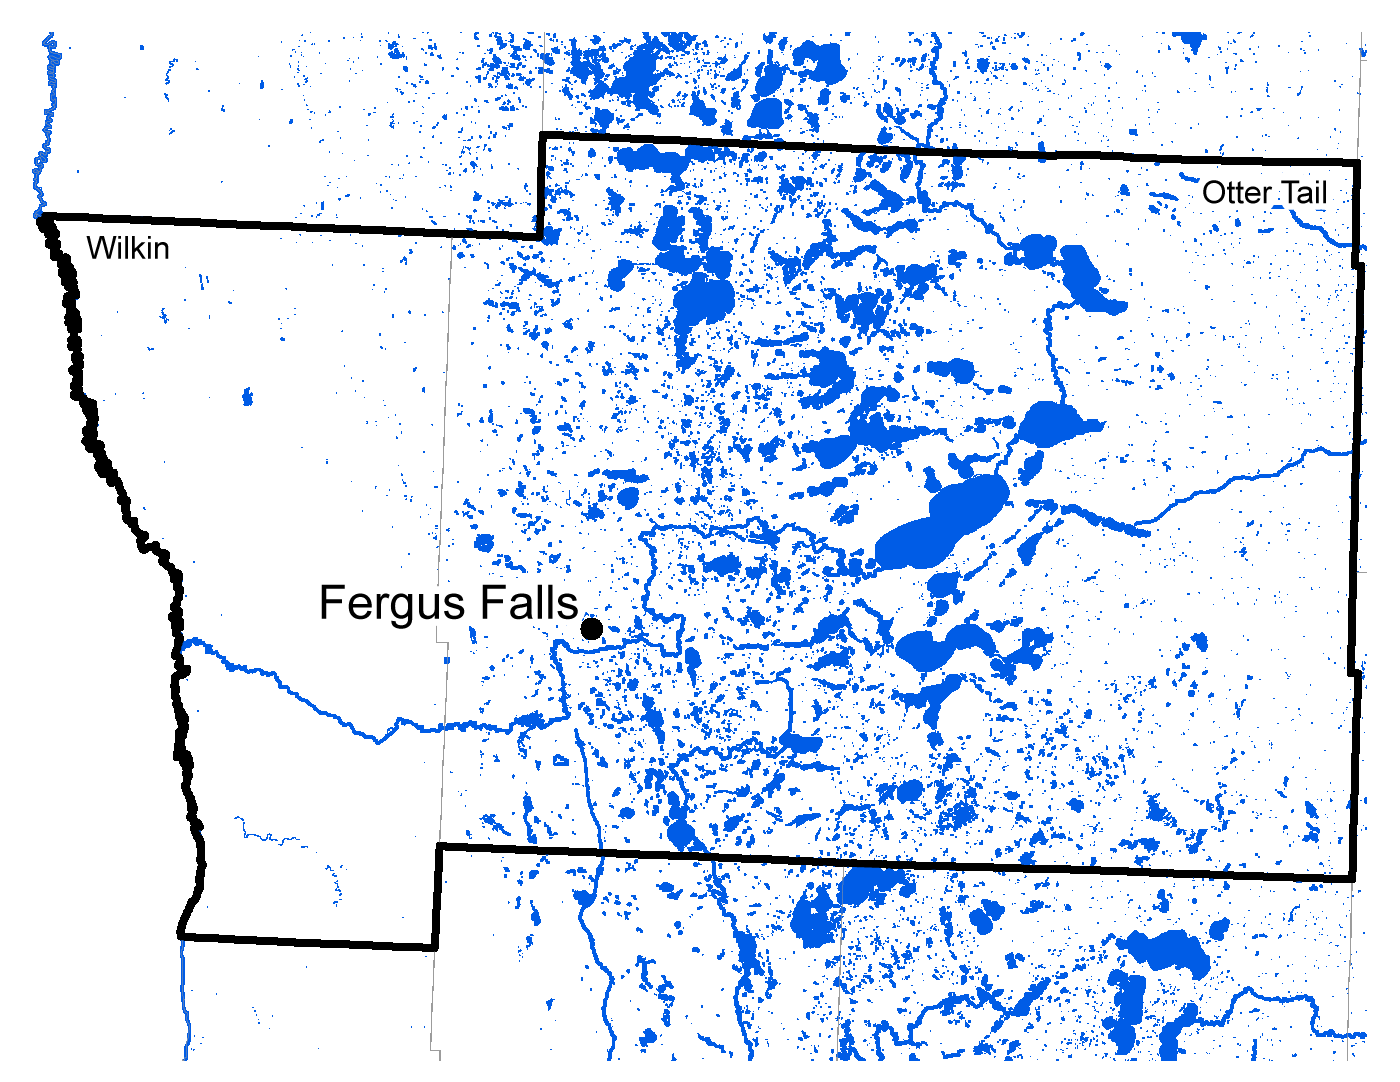 Map of Fergus Falls work area